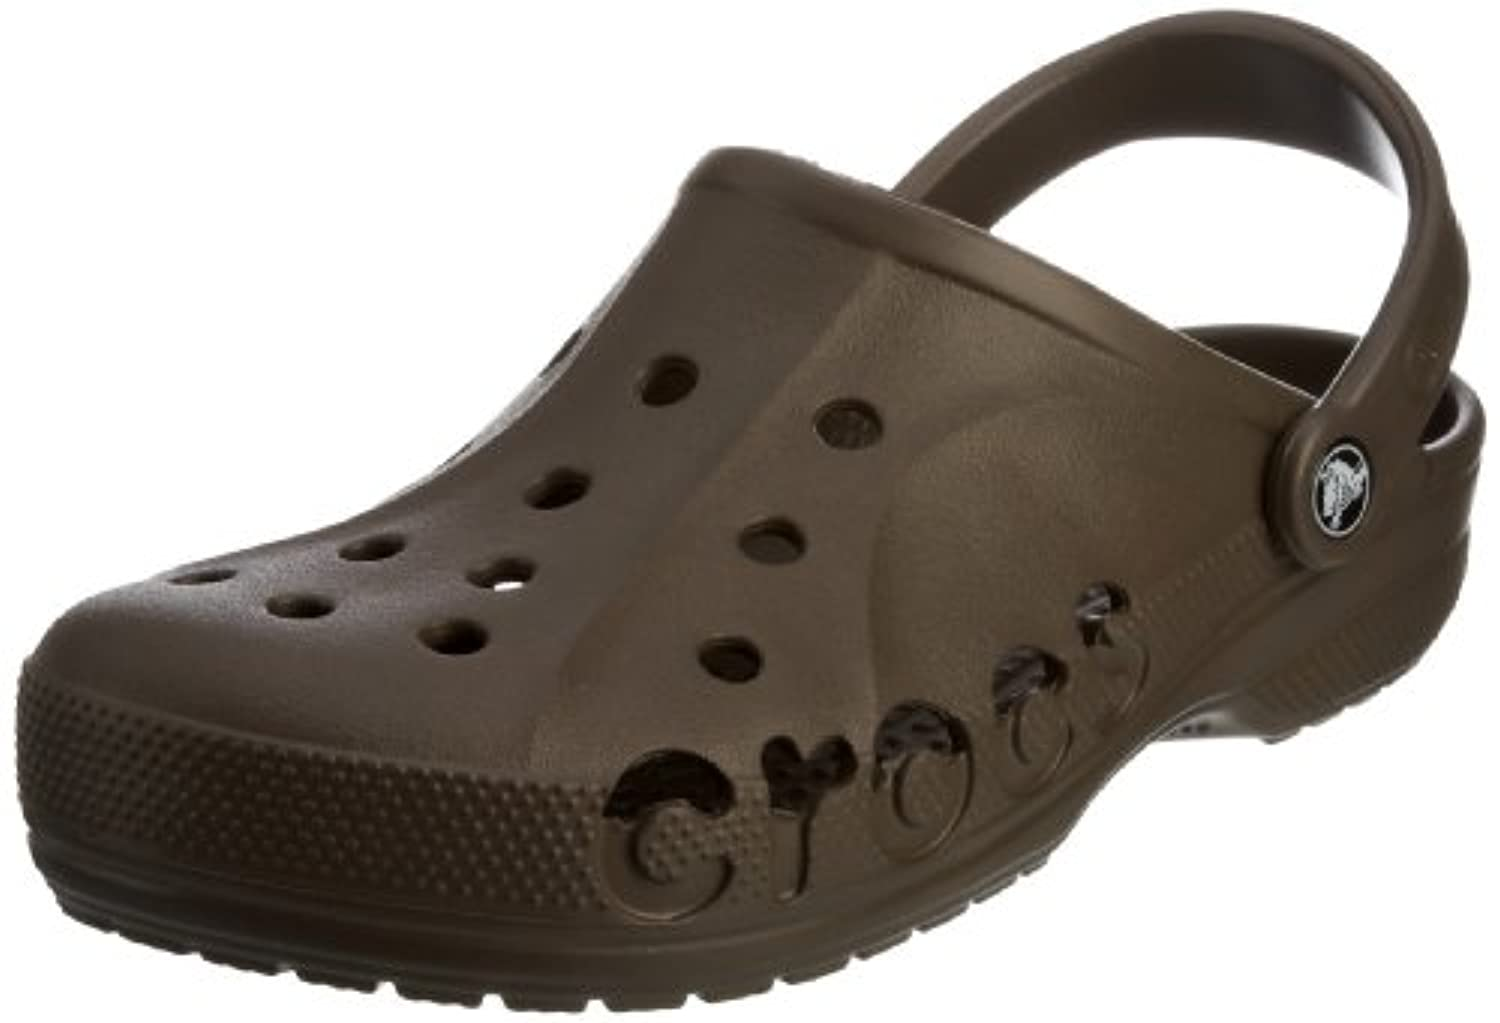 Crocs Baya, Unisex Adult's Clogs - BlacK 3 UK Men/4 UK Women (36-37 EU)